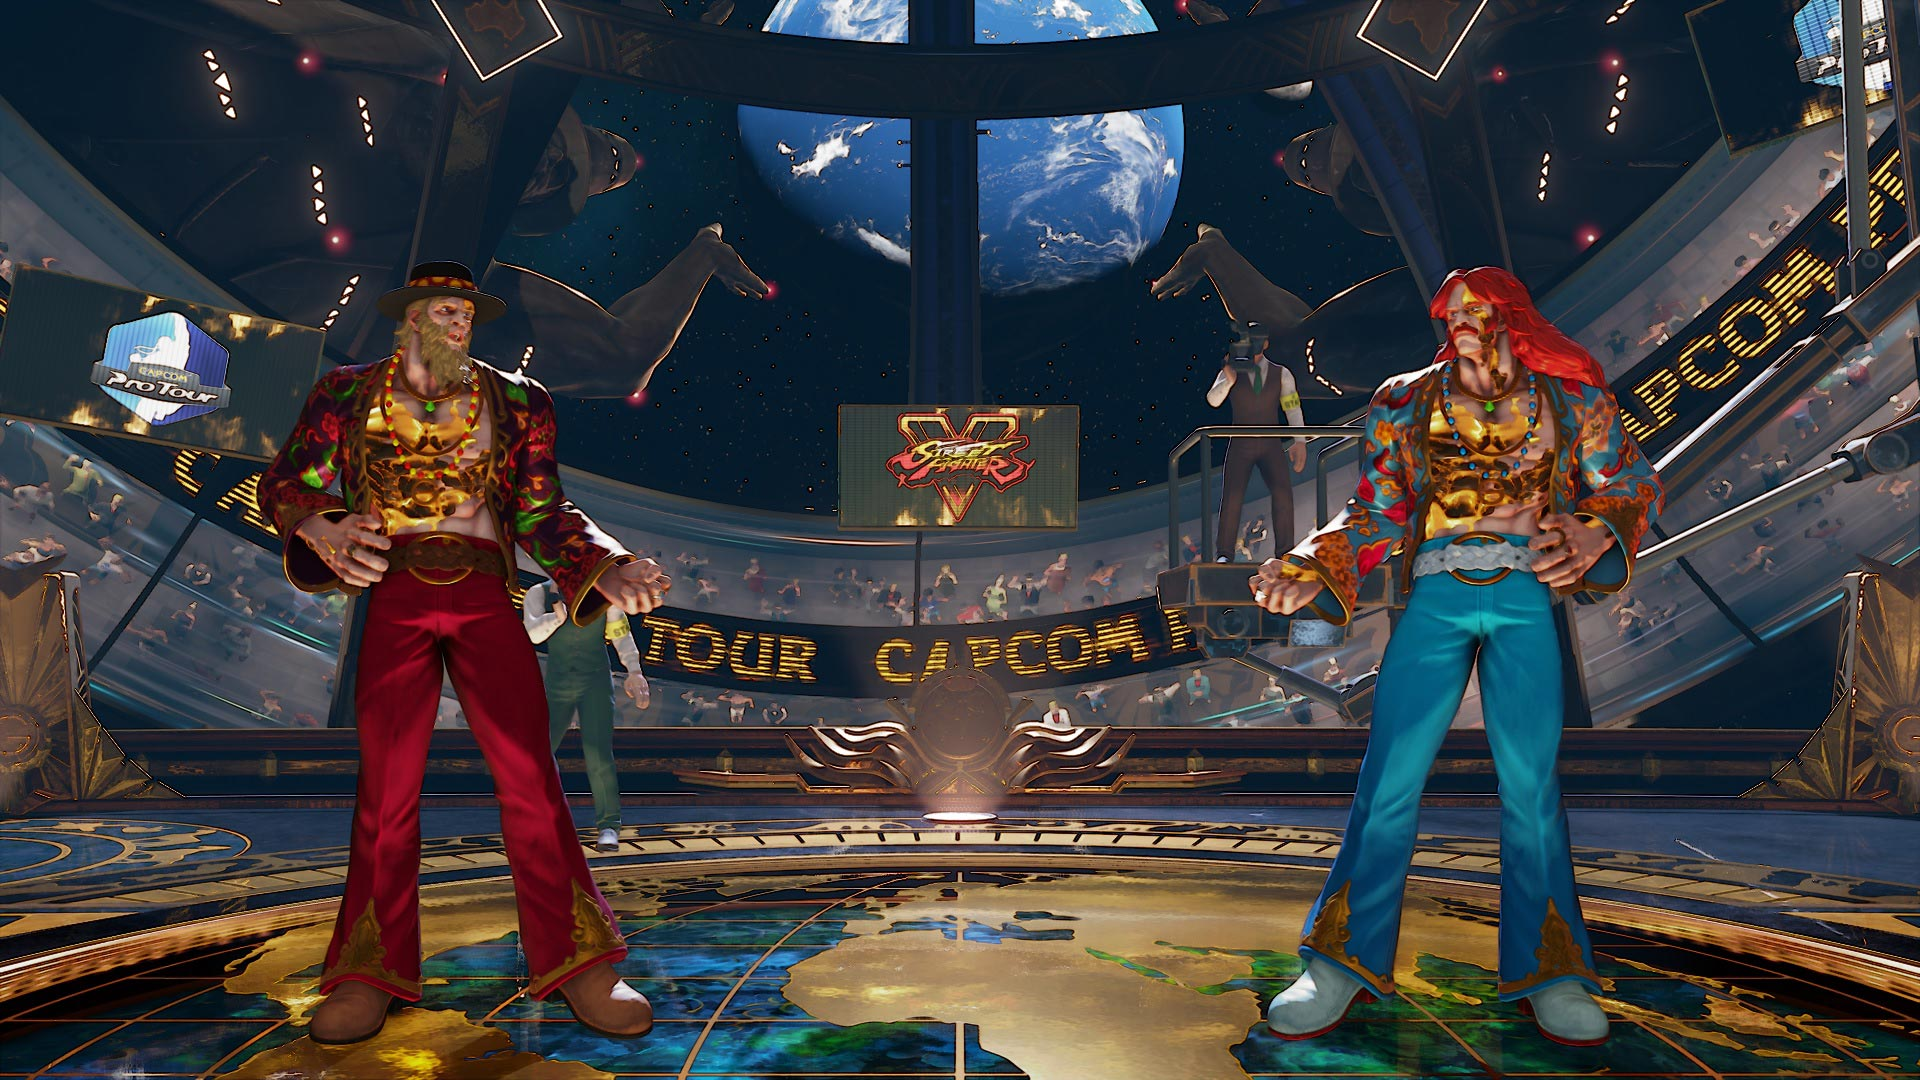 G CPT DLC costume colors and Easter egg 1 out of 5 image gallery